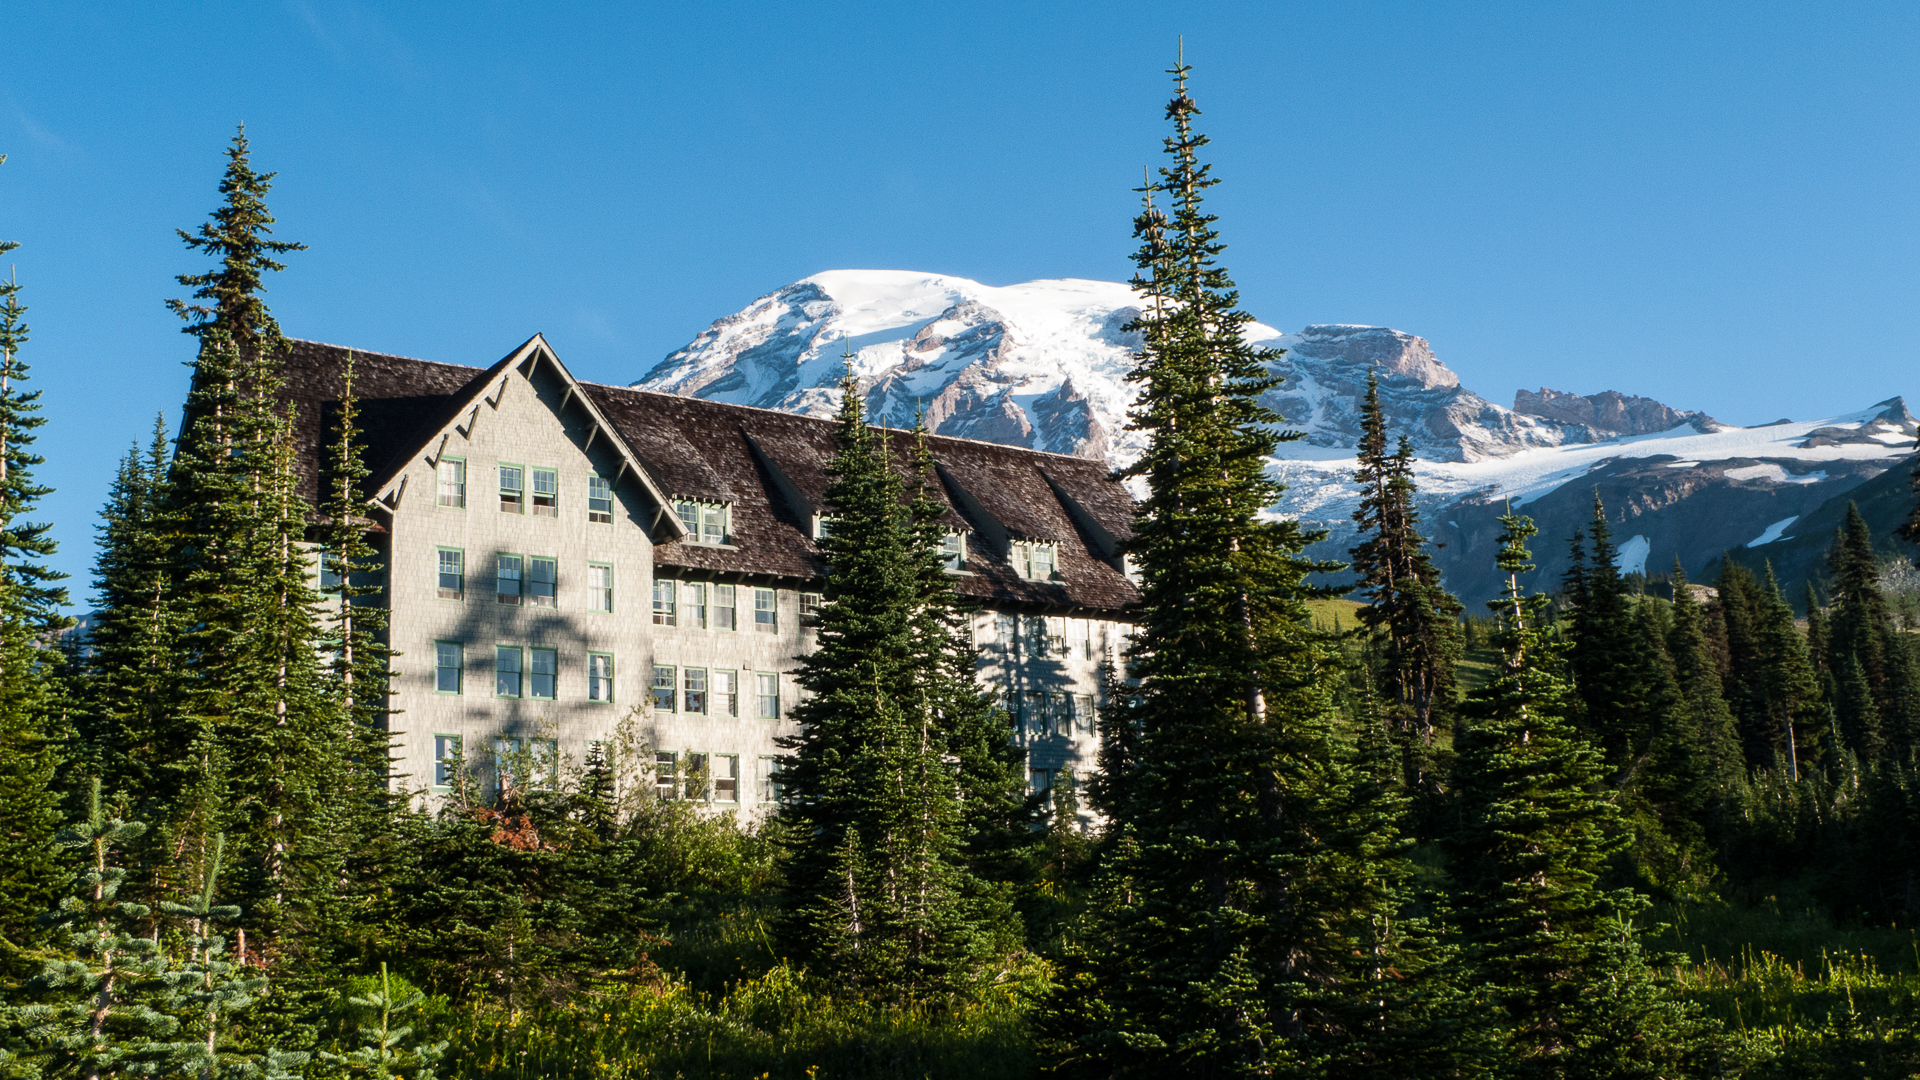 Our last morning at Mount Rainier was spectacular, and we were a bit sad to be leaving. Still, it had been a great couple of days, and we were excited to continue the road trip and see what was ahead.